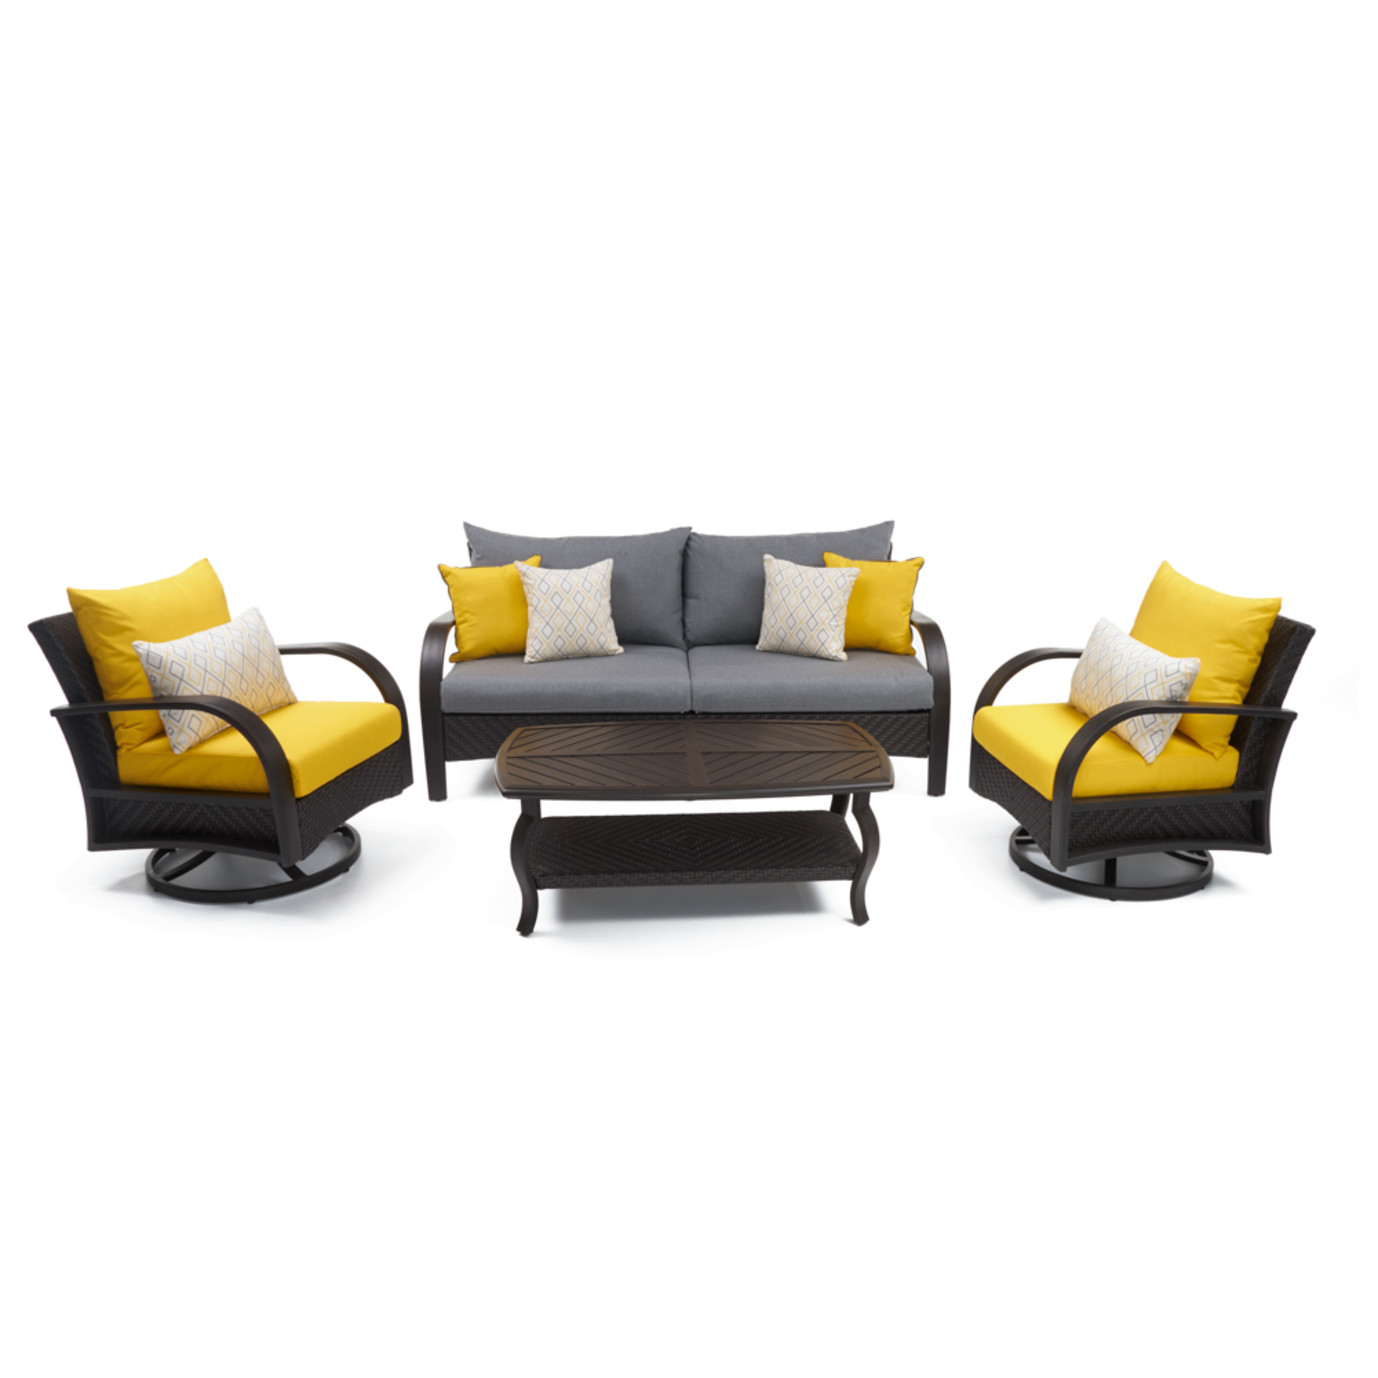 Barcelo™ 4pc Motion Club & Sofa Set - Sunflower Yellow